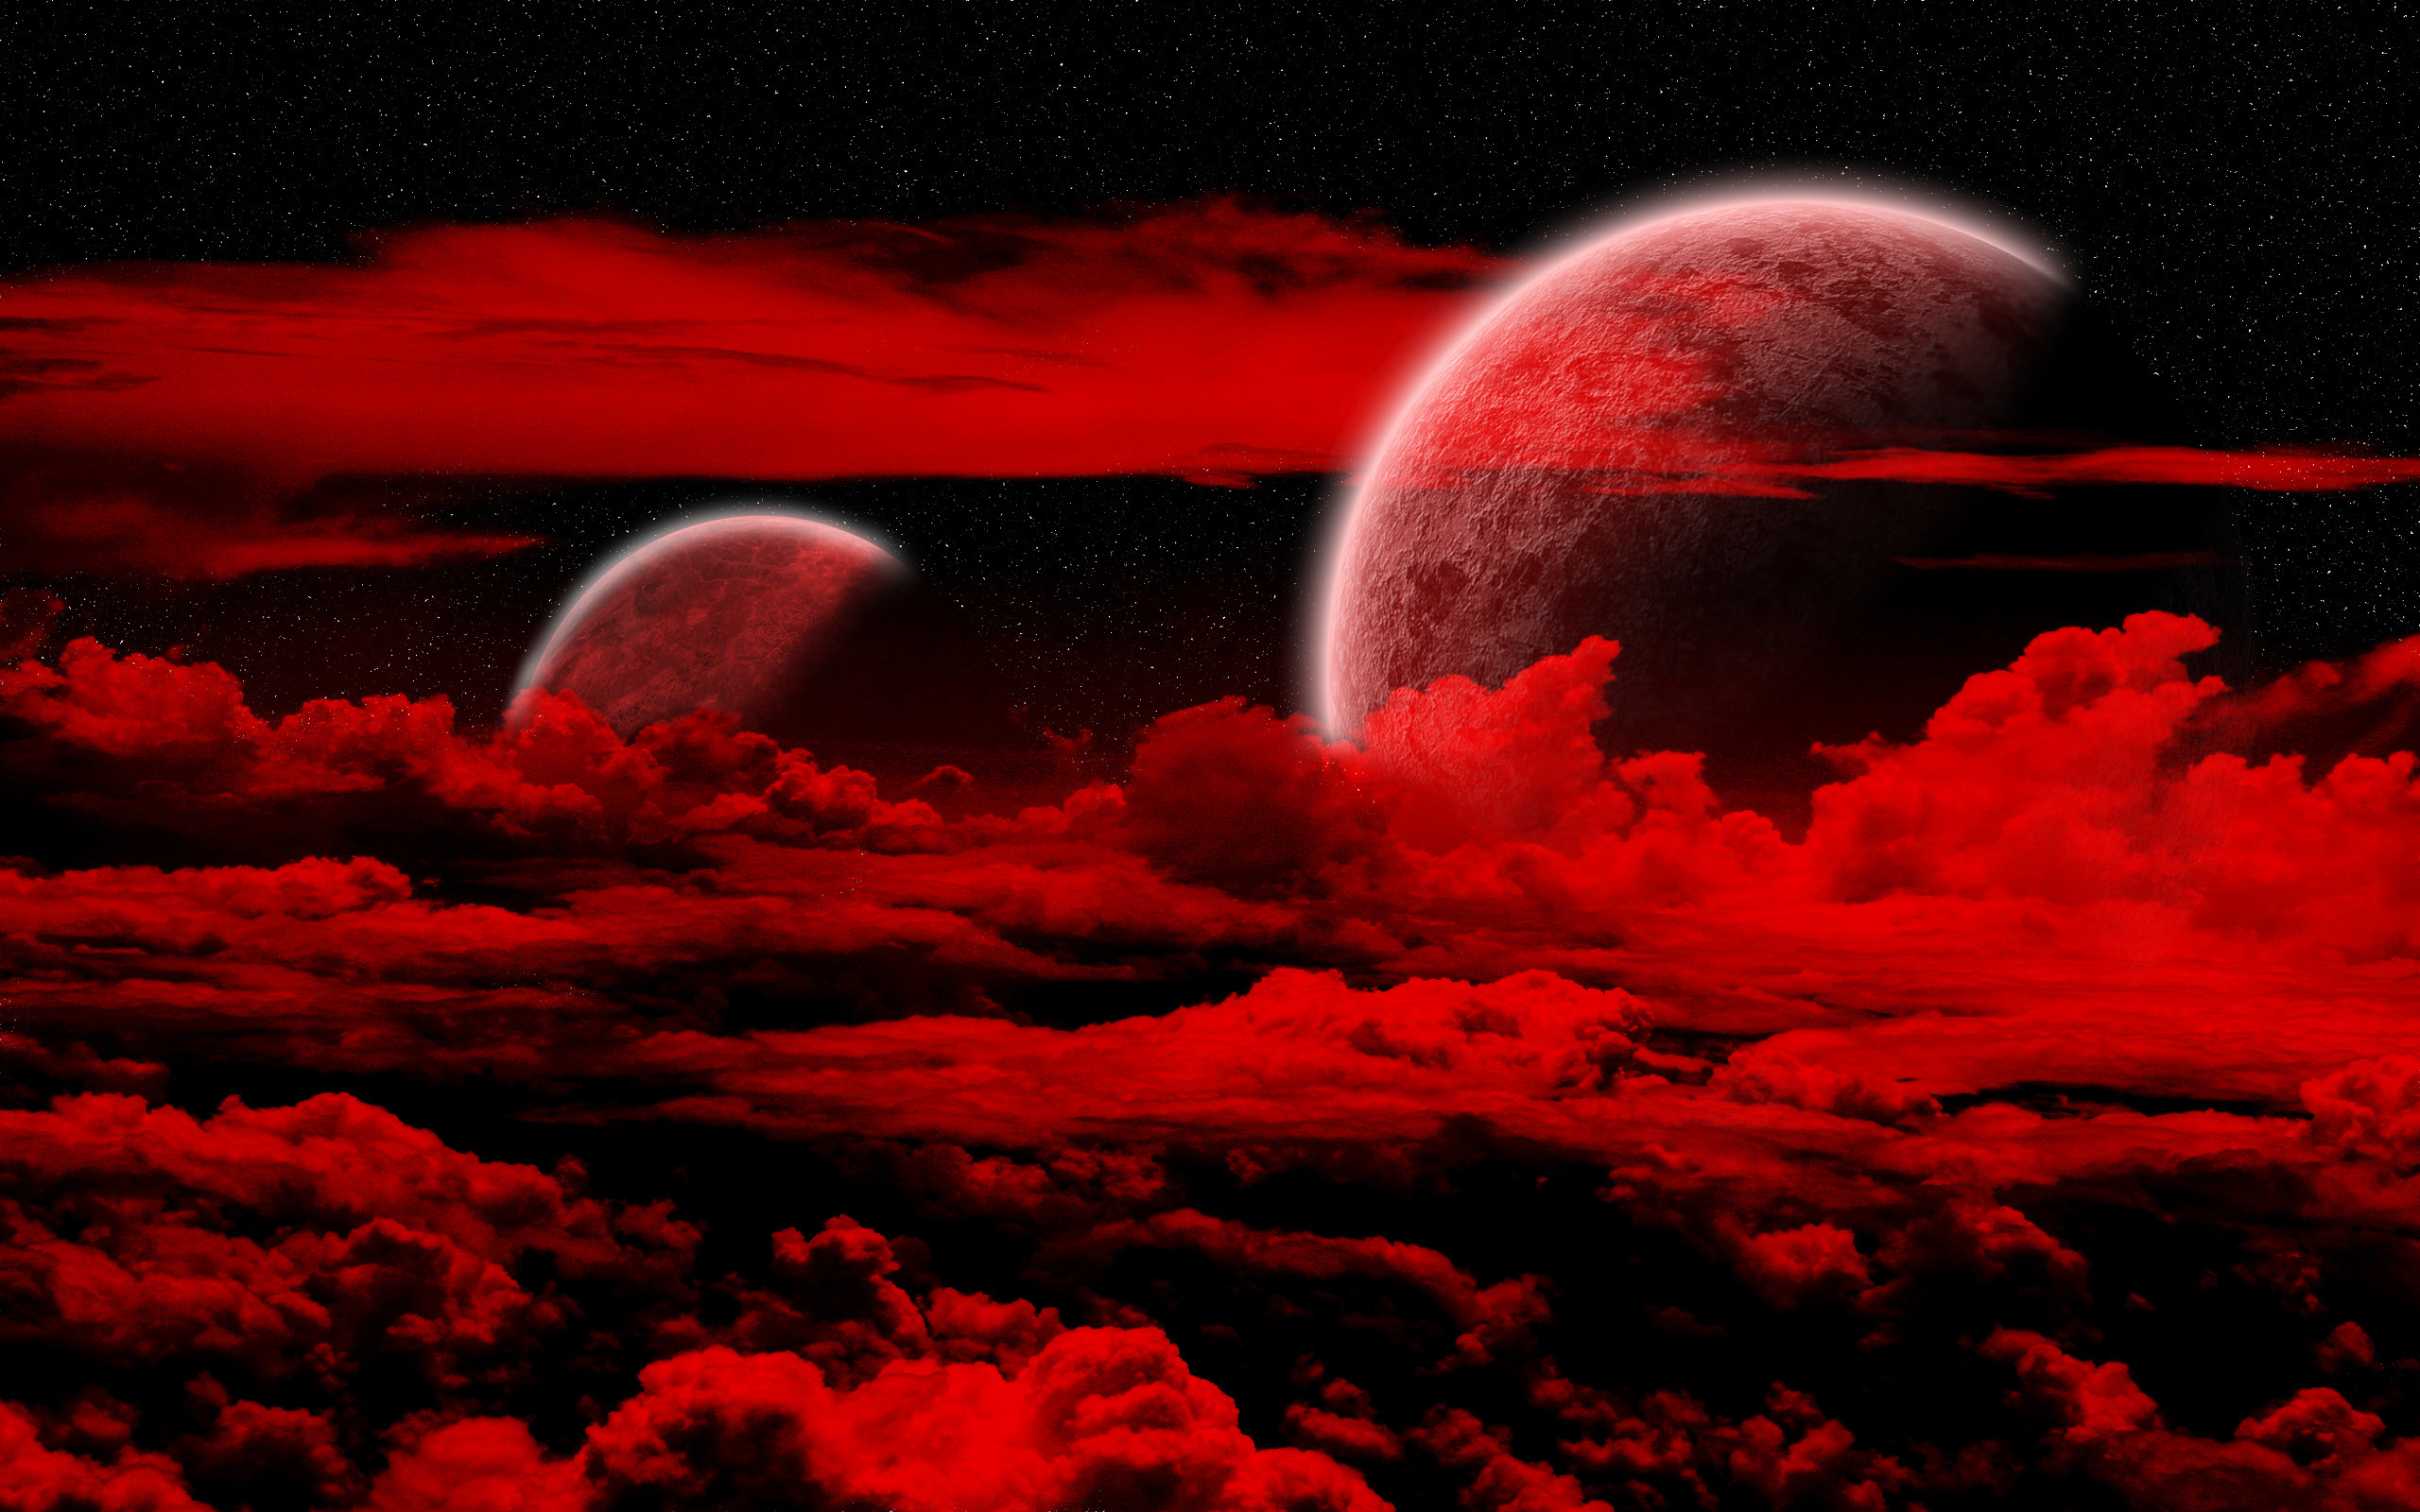 Black and red hd wallpaper 58 images - Cool red and black wallpapers ...